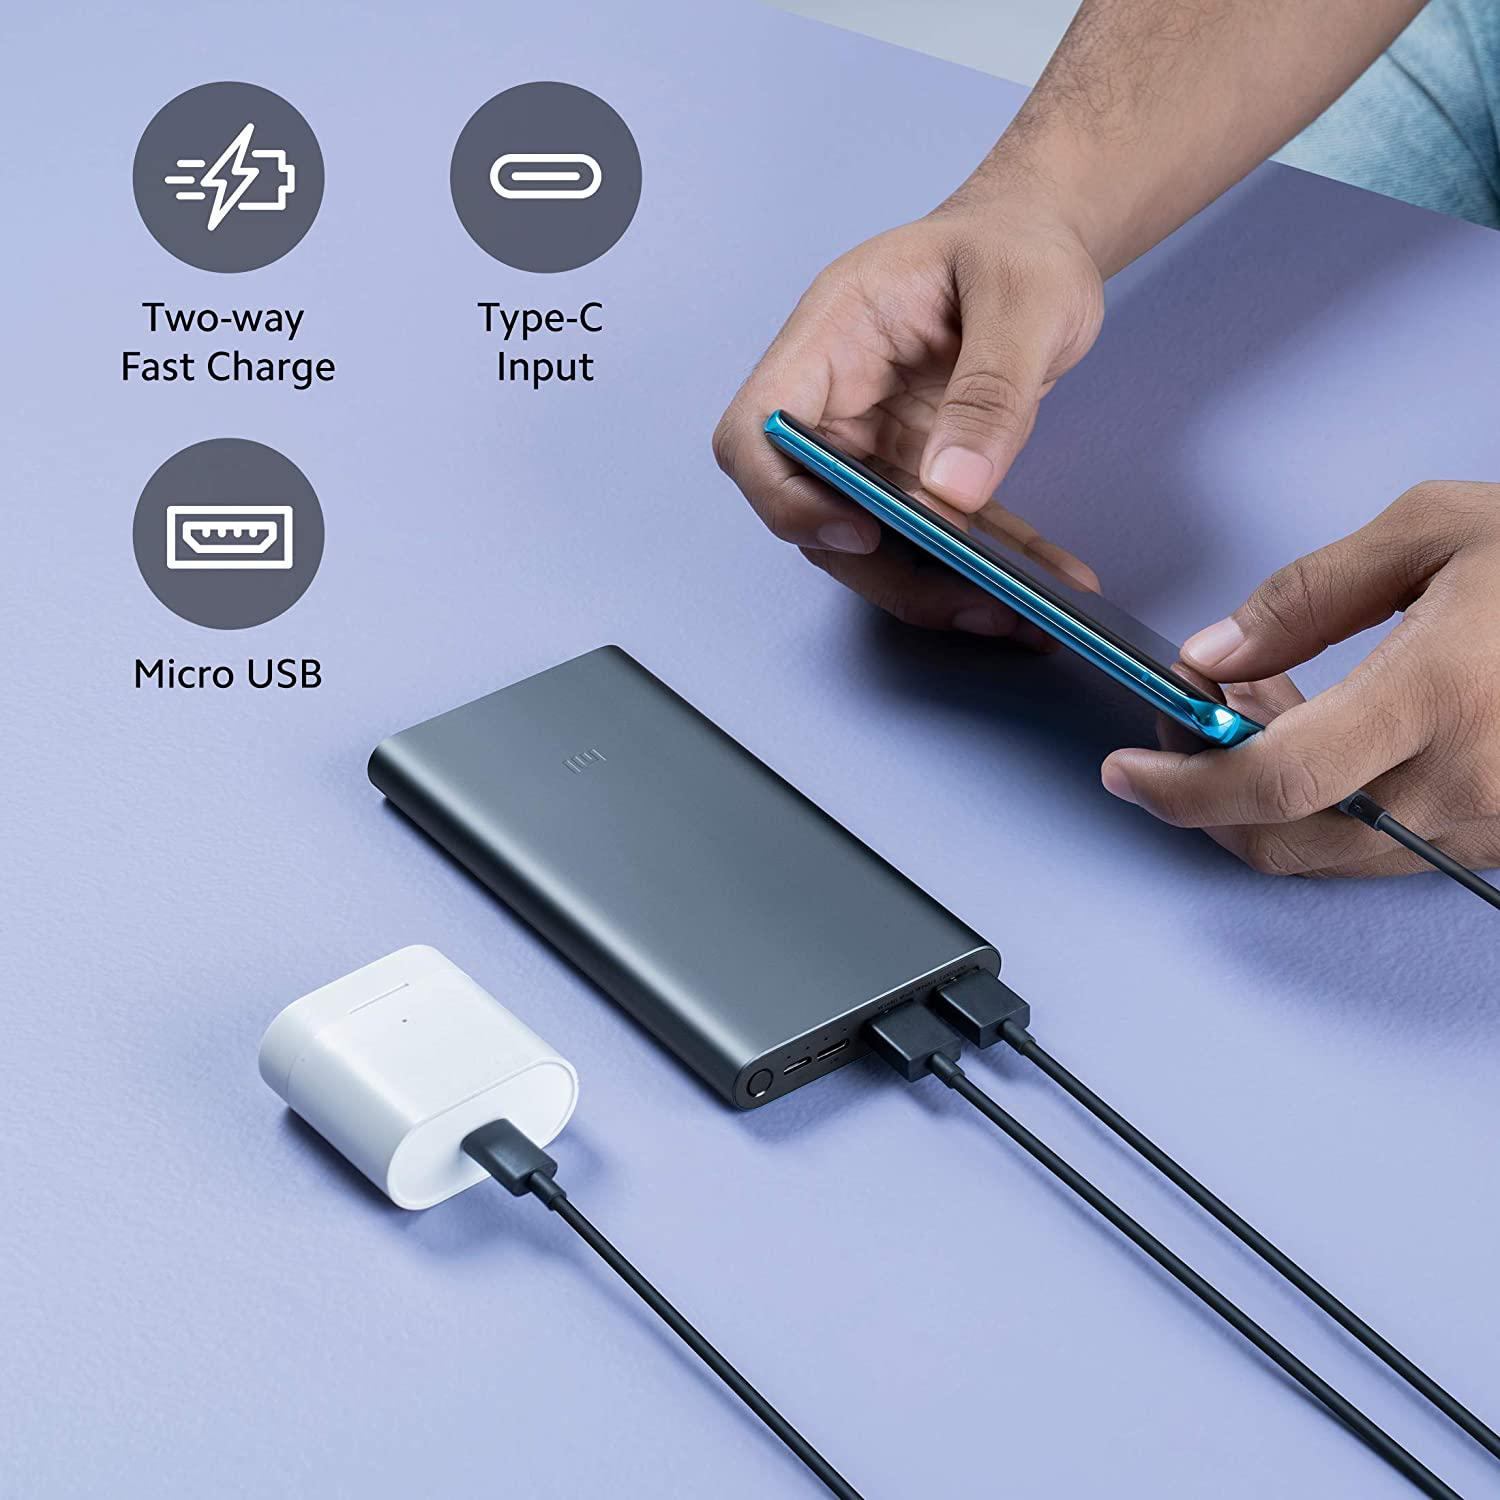 Best Deals and Offers on Power Banks in Amazon Great Indian Sale 2020